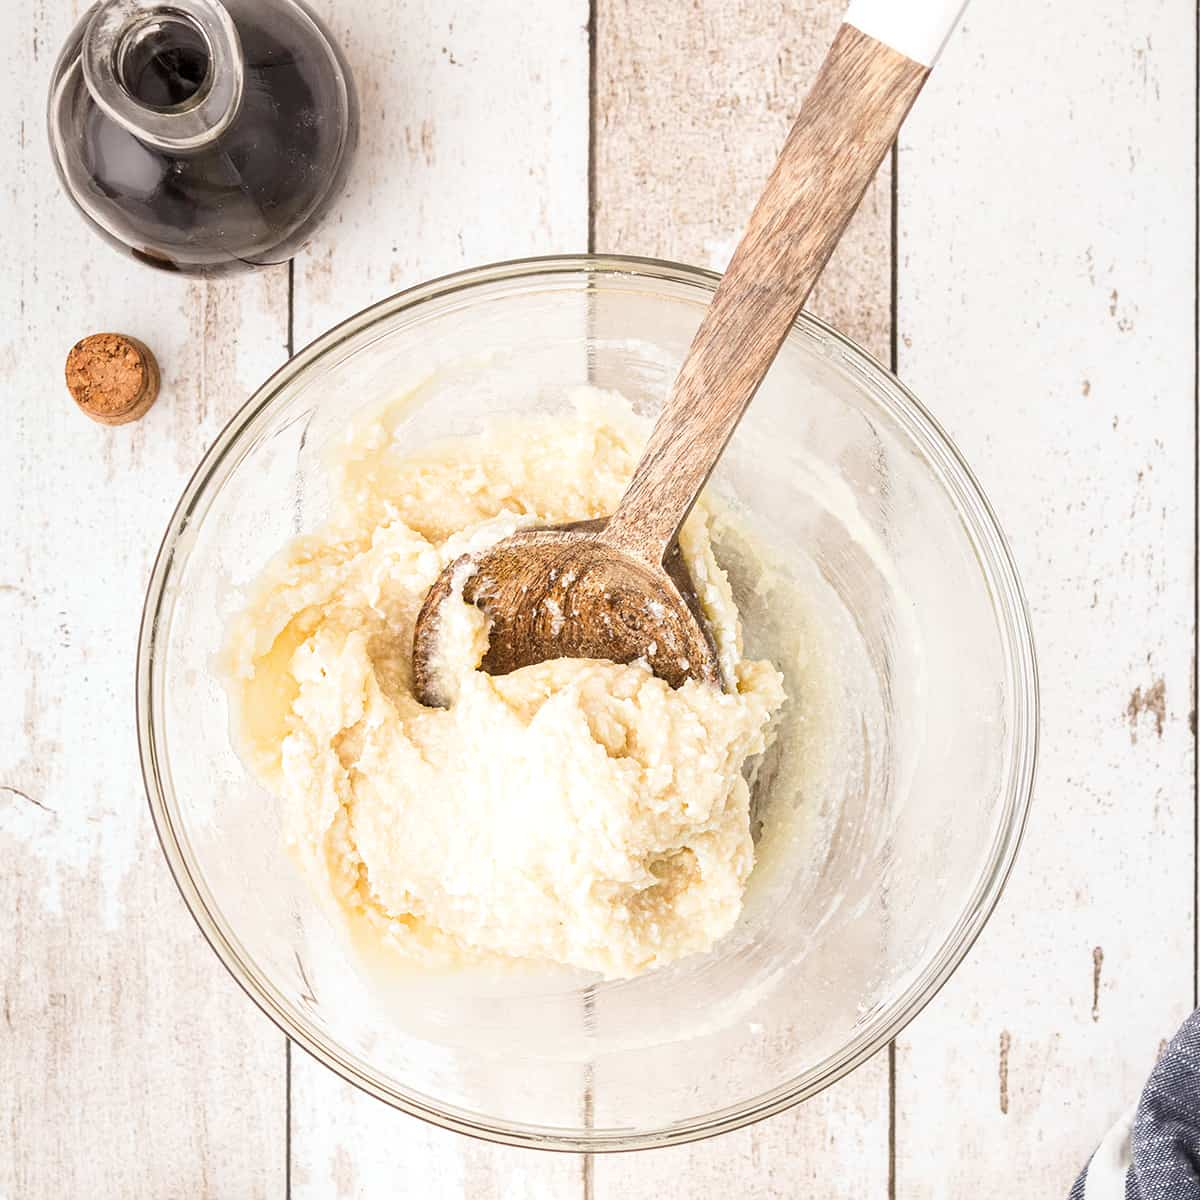 Medium bowl containing softened cream cheese, sugar, and vanilla stirred with wooden spoon